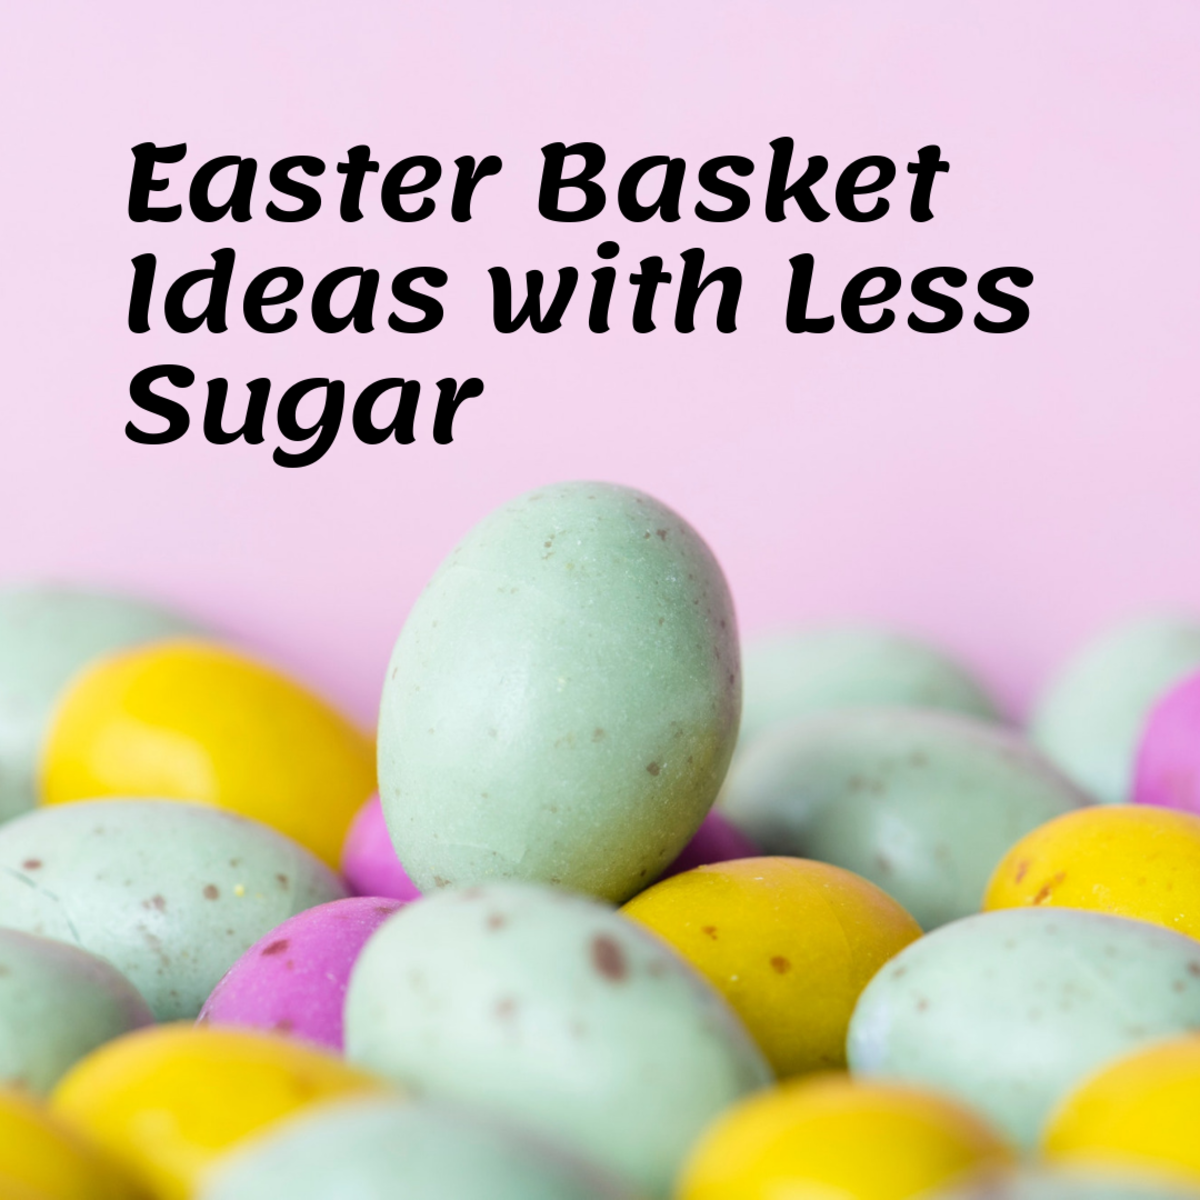 Easter Basket Ideas with Less Sugar